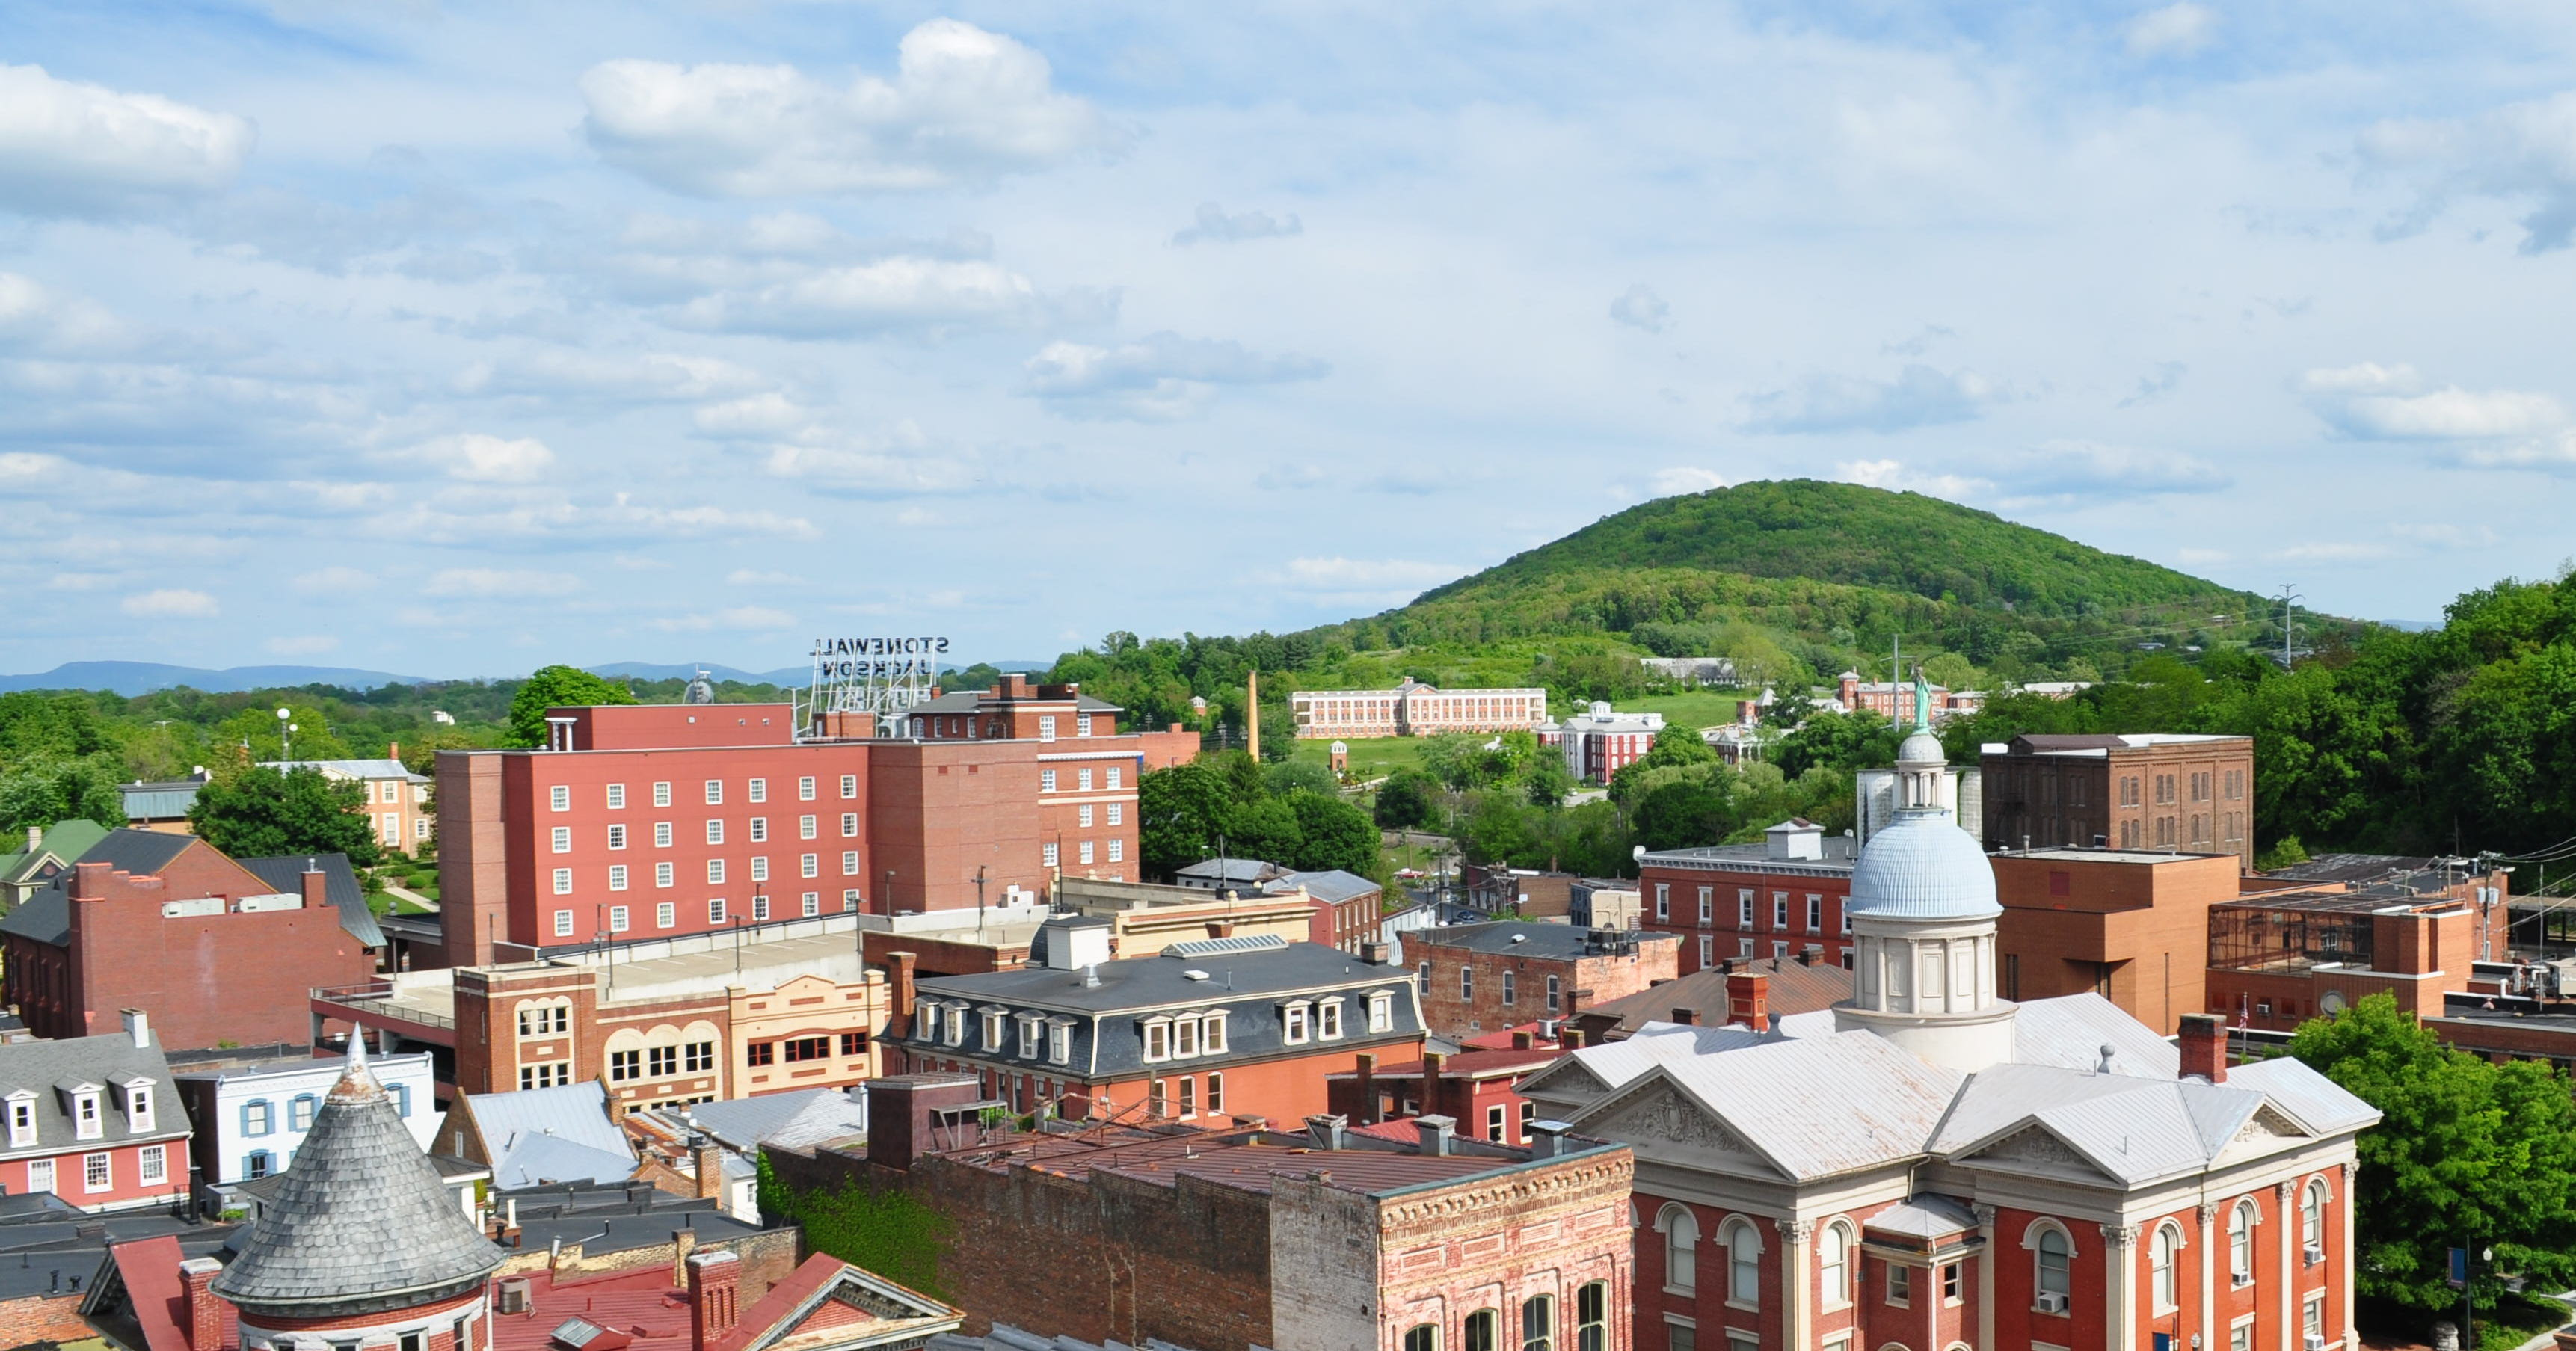 Staunton city skyline